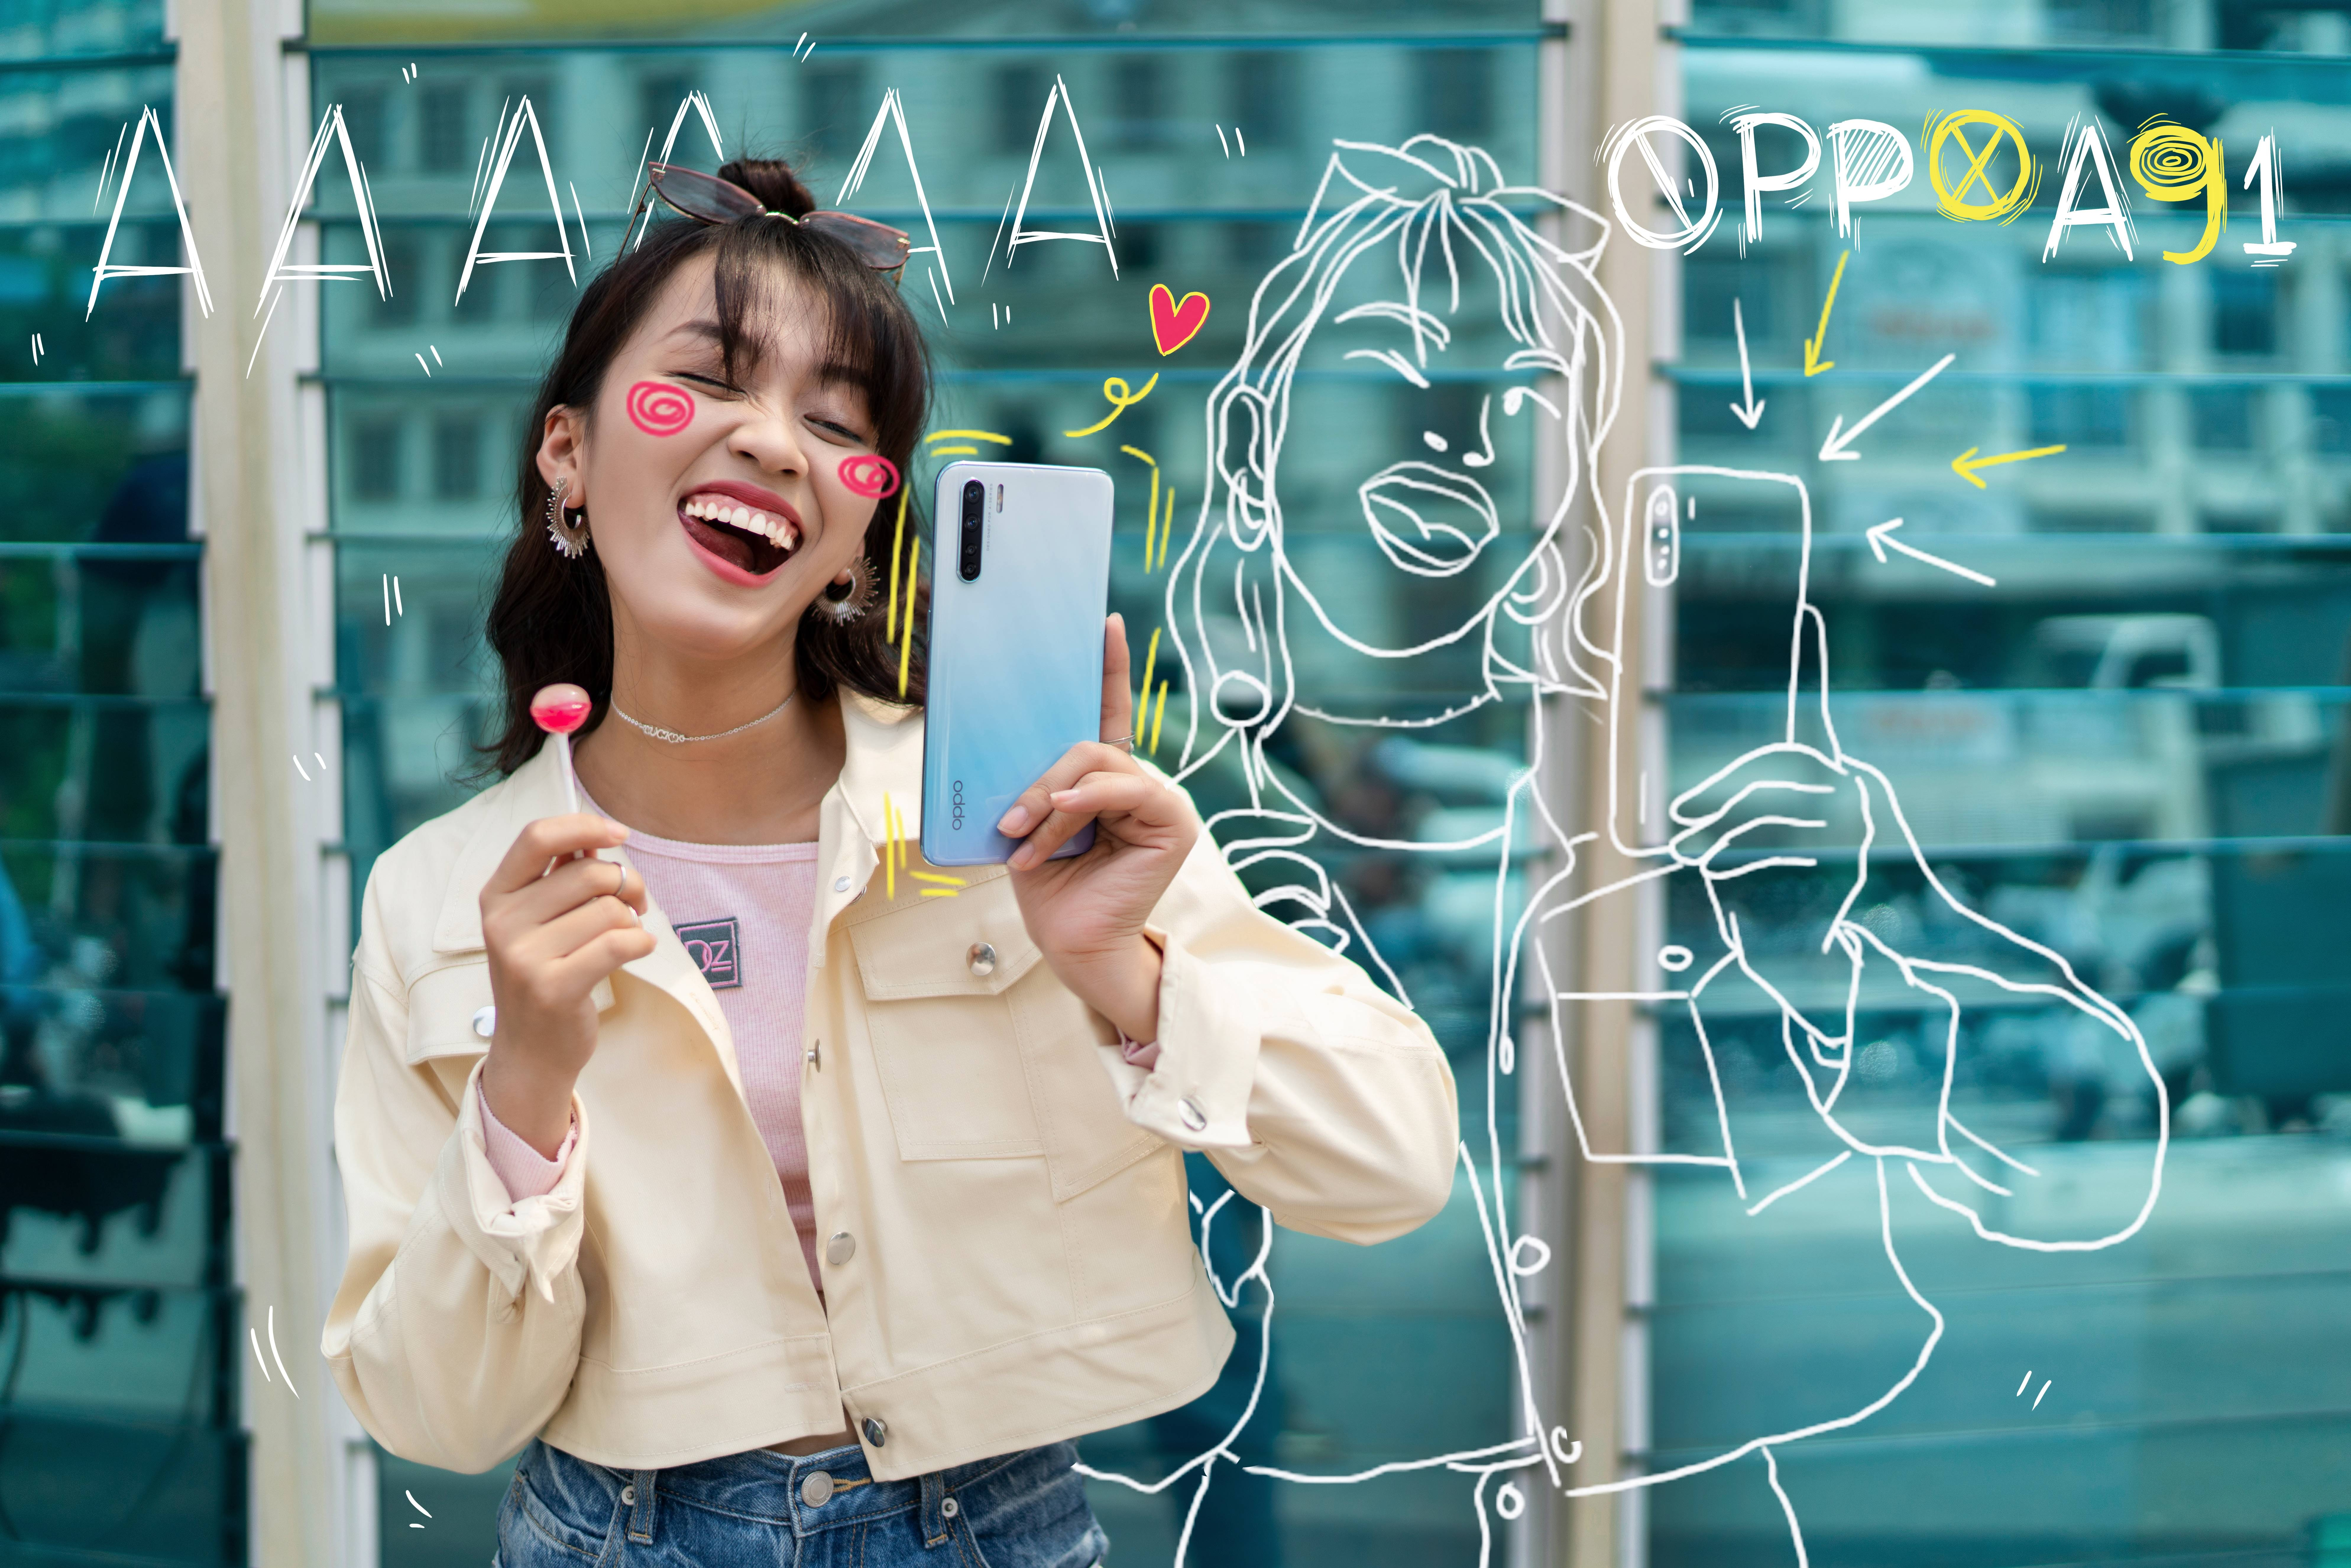 Oppo anh 6